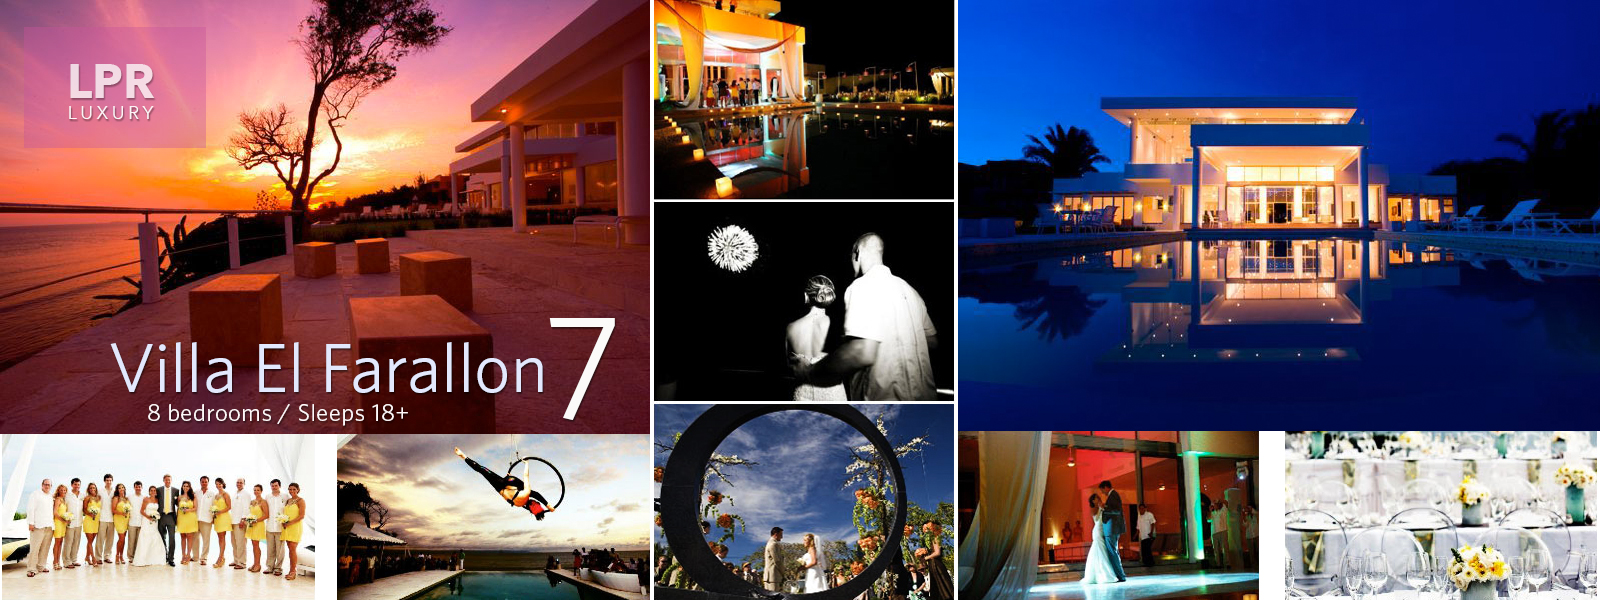 Villa El Farallon 7 - Puerto Vallarta Wedding Villas and Events - Punta Mita Mexico